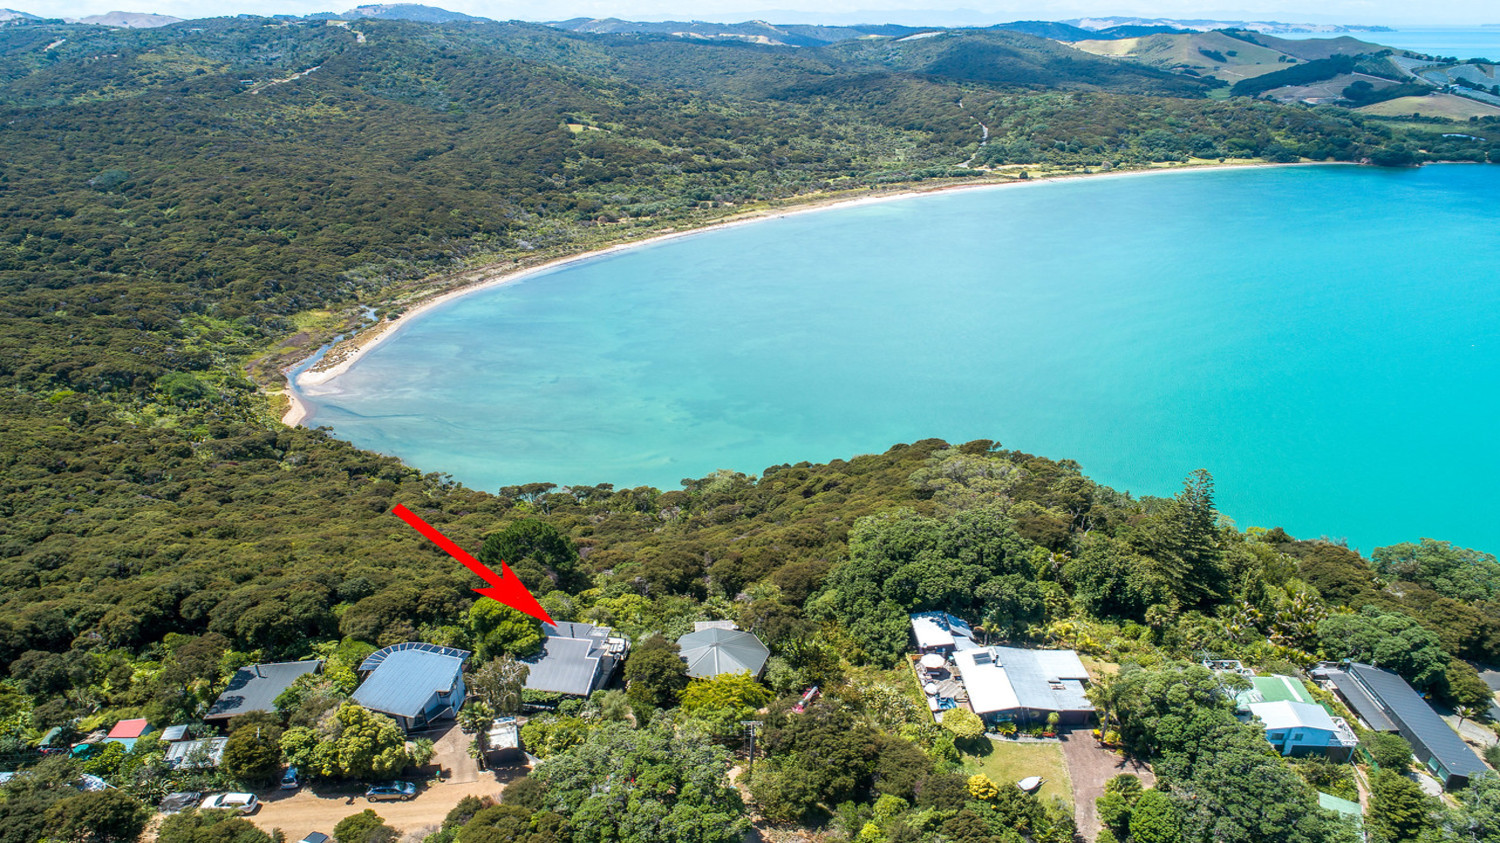 5._Baywatch_-_aerial_shot_from_above_with_bay_in_background_and_arrow_1500x843-1.jpg